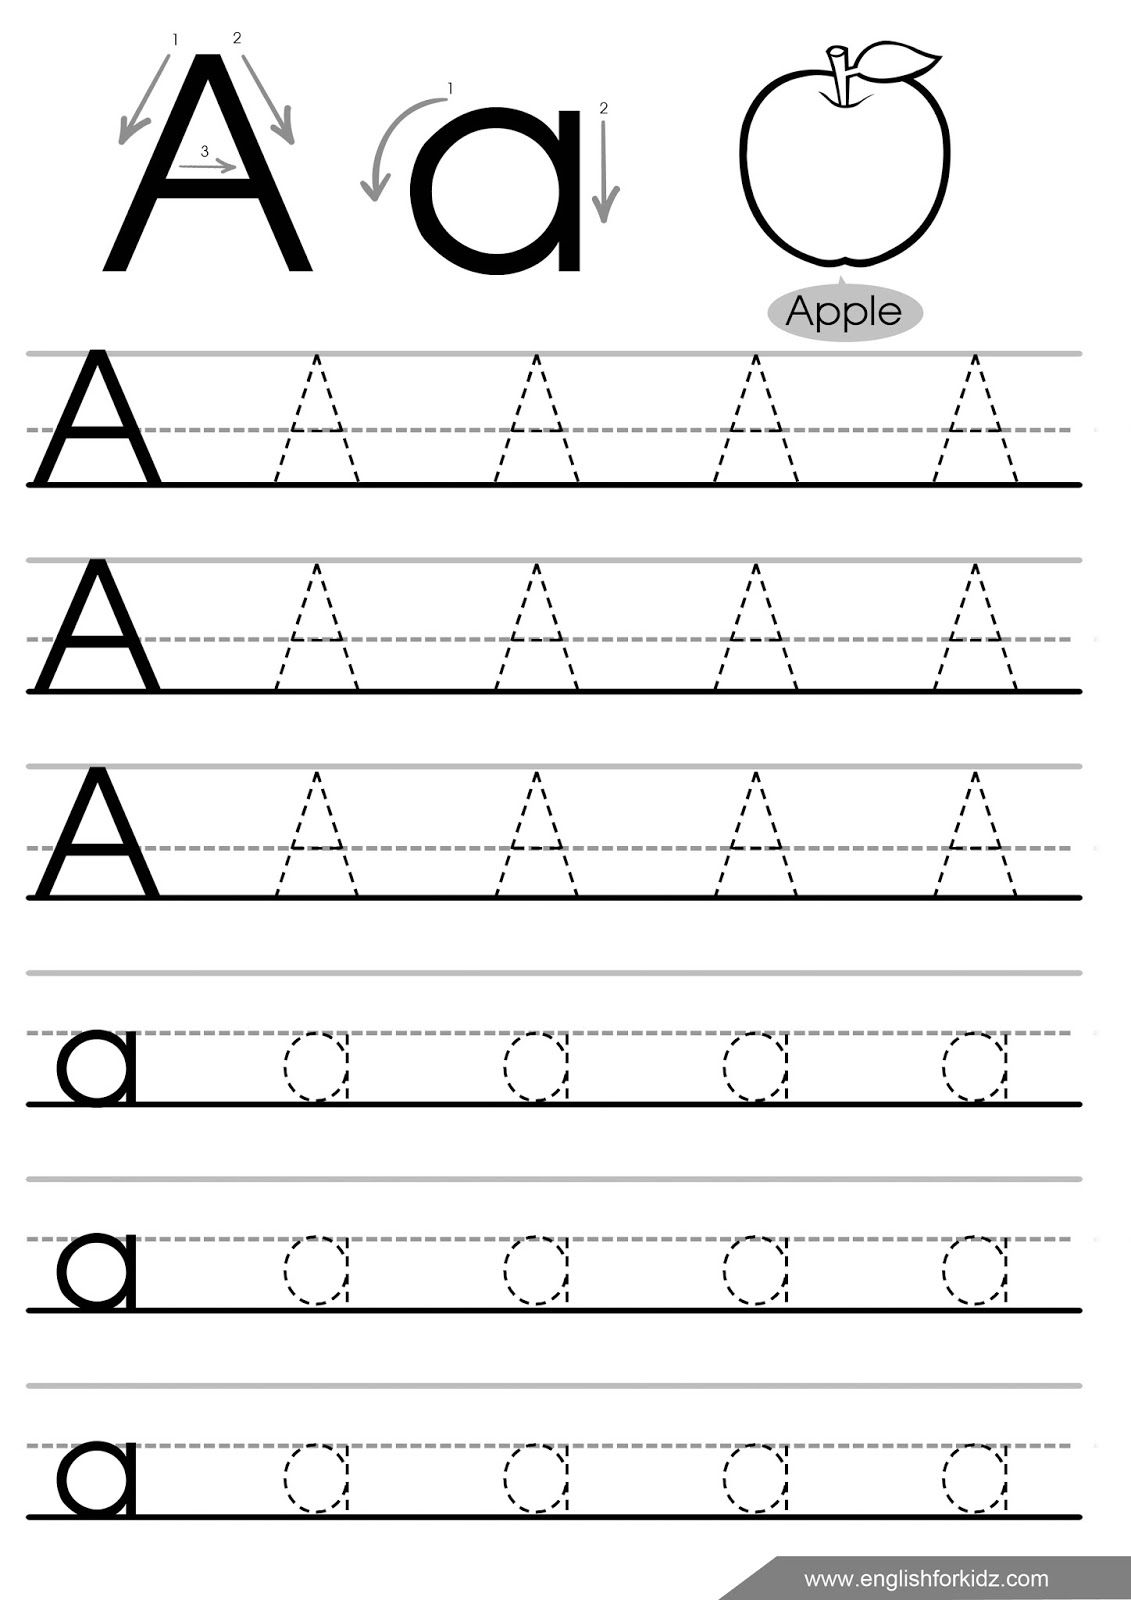 Worksheets Letter Tracing Worksheets letter tracing worksheets fun for the kiddies pinterest worksheets